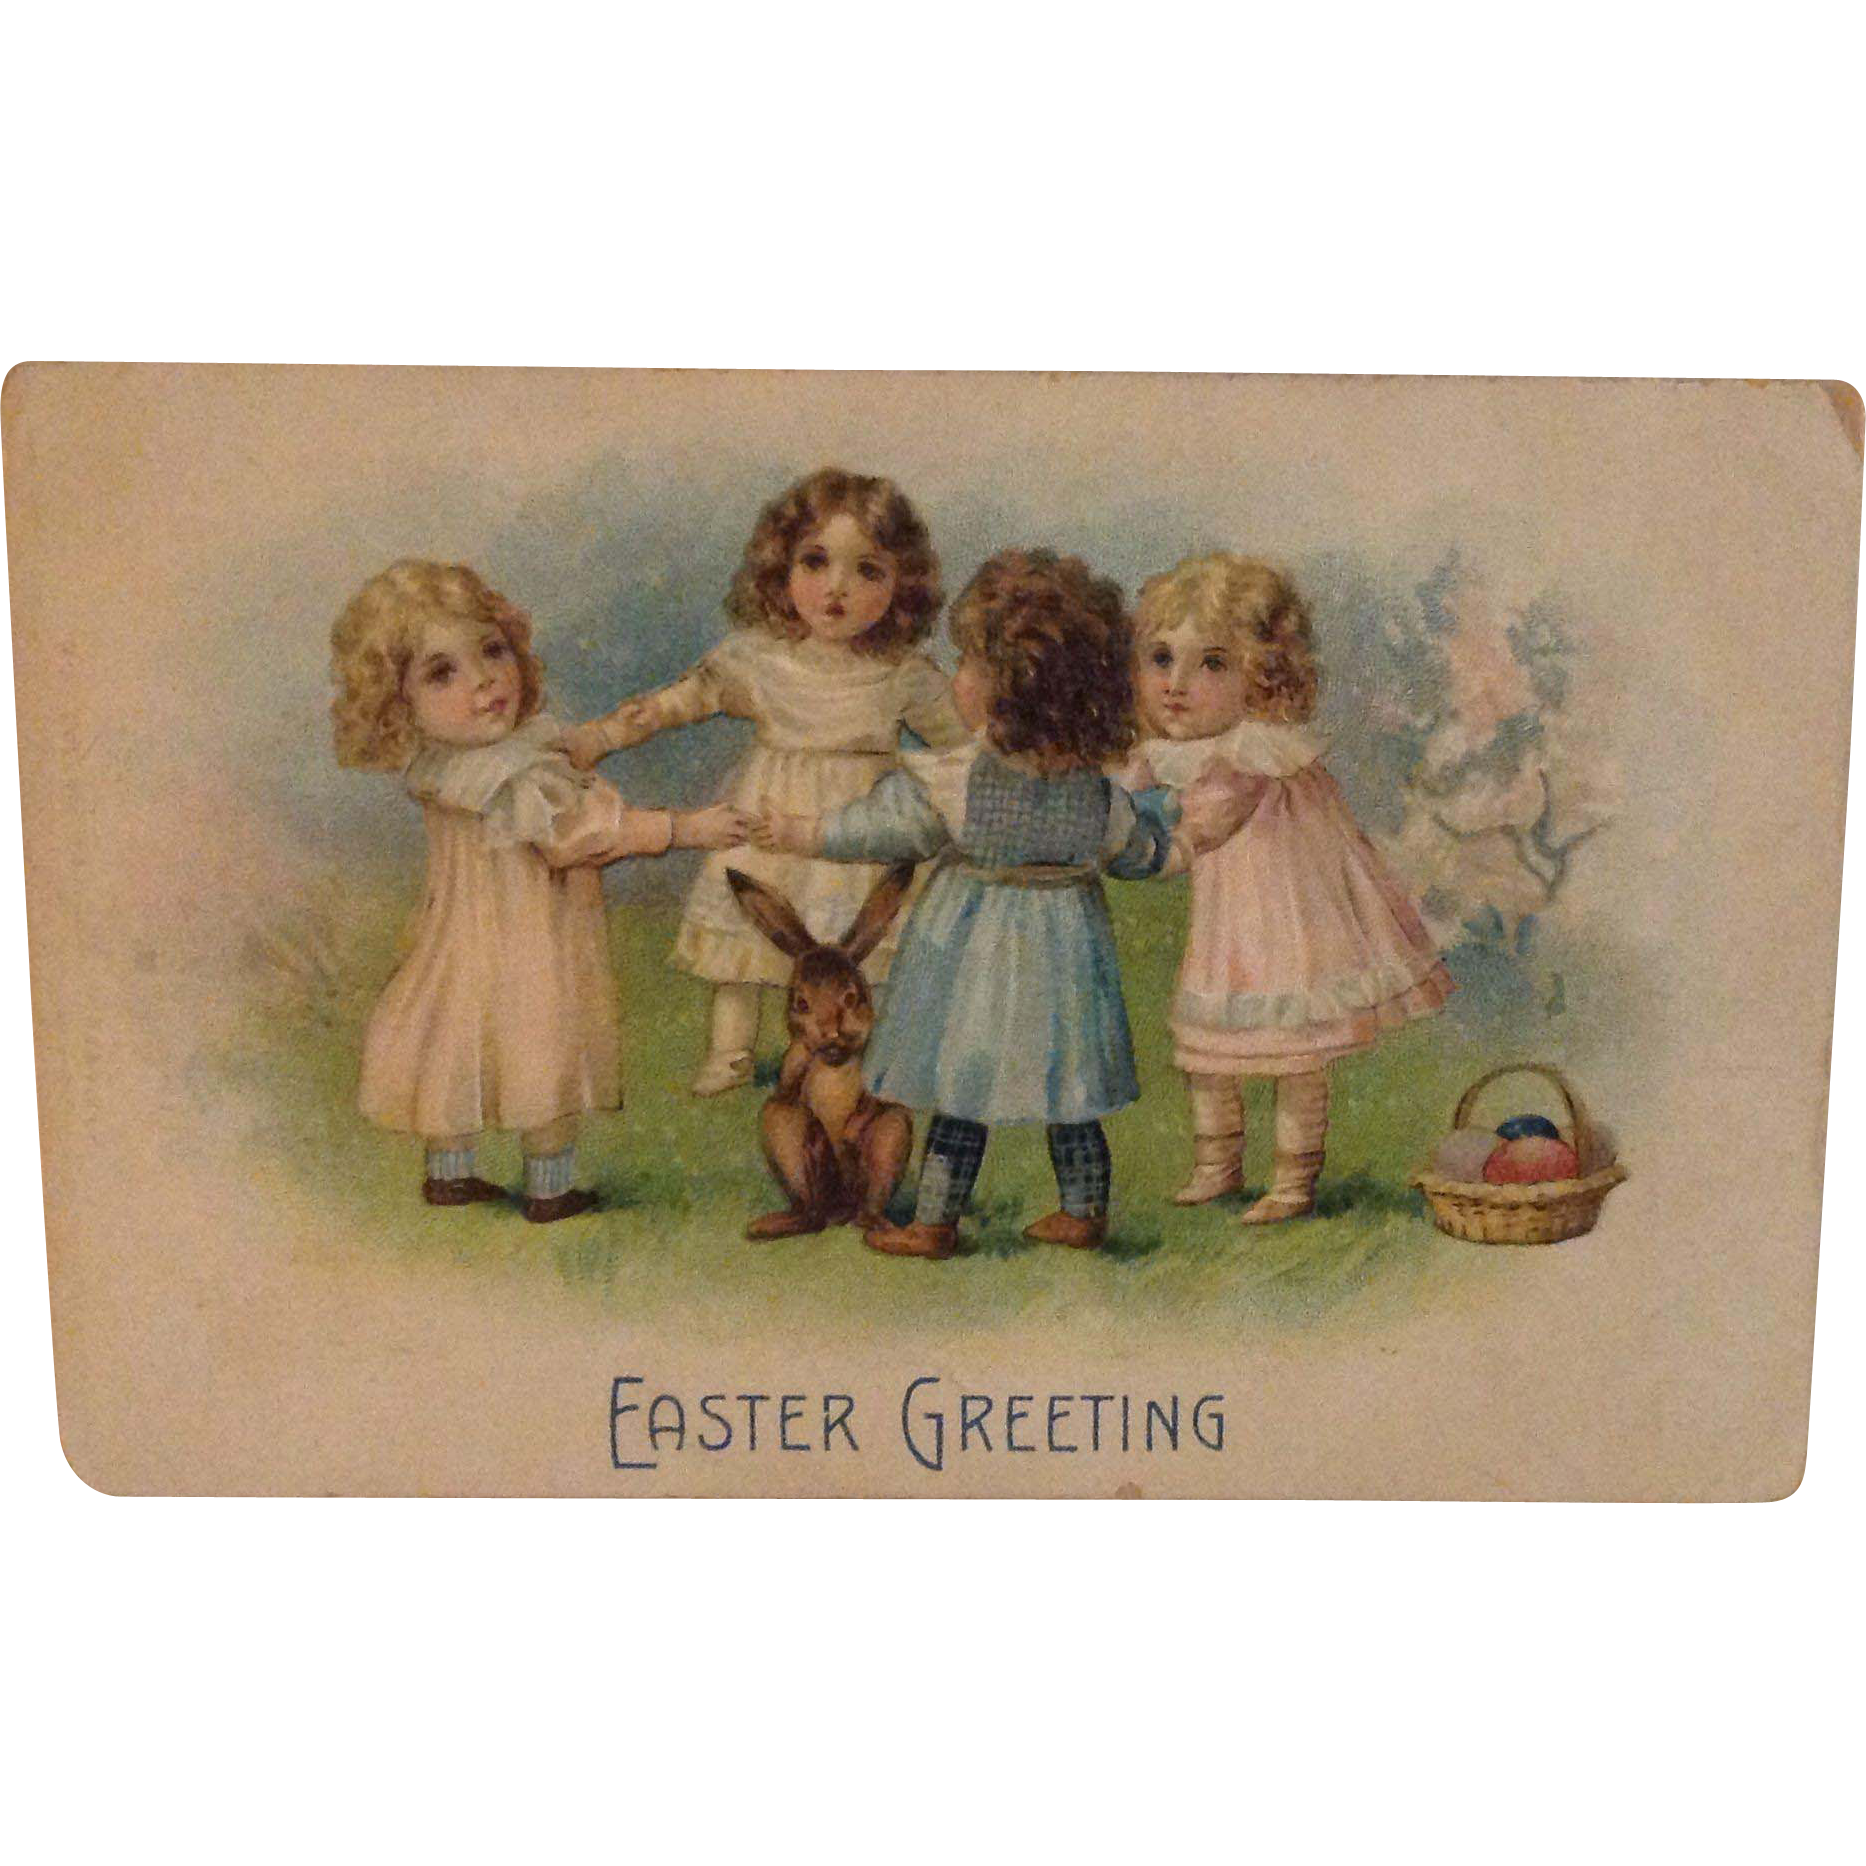 1909 Easter Greeting Postcard with lovely little girls dancing in a ring around a little brown bunny